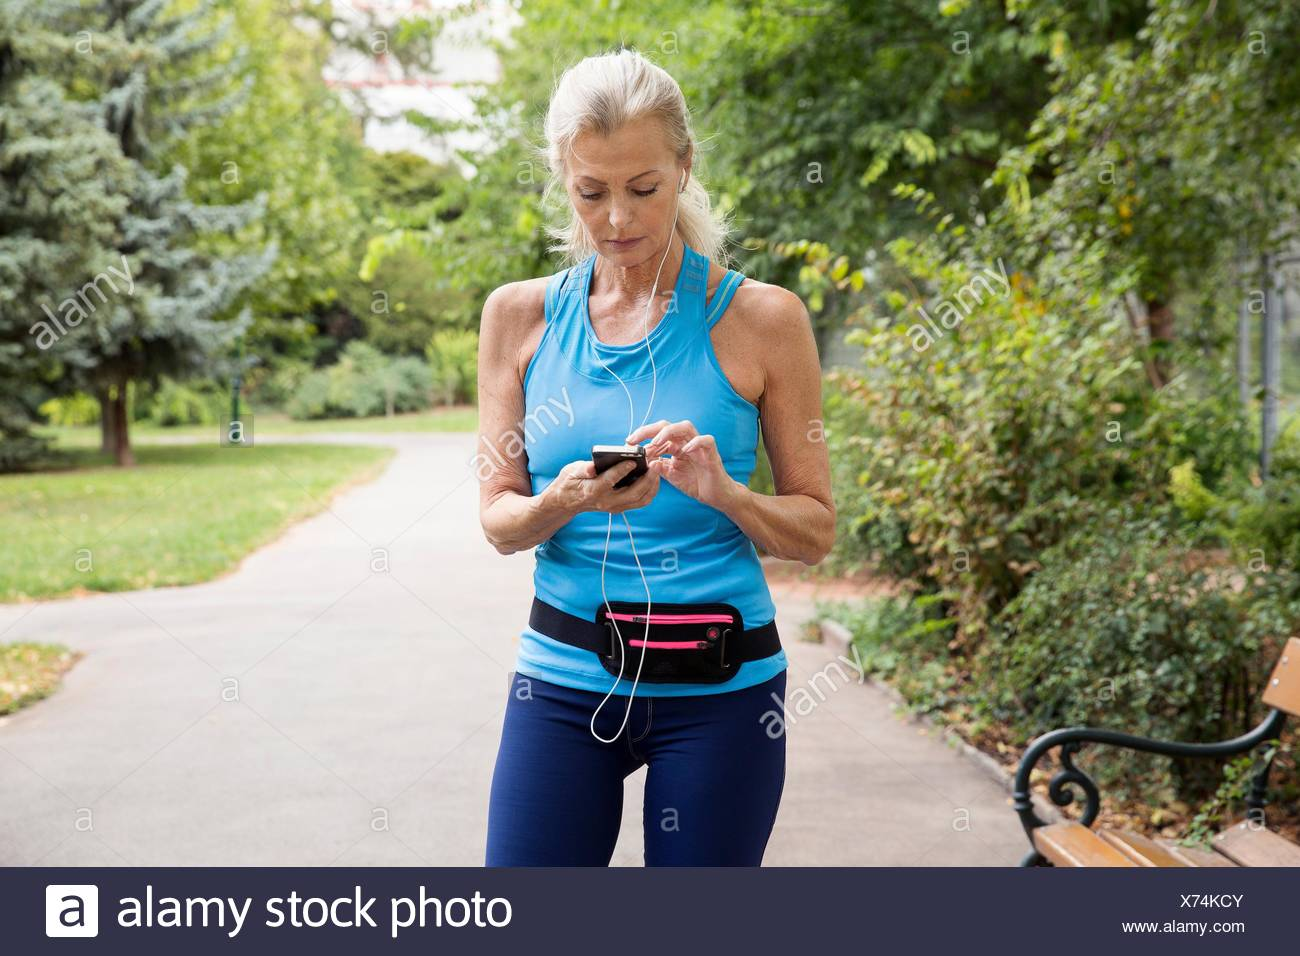 Mature woman choosing smartphone music whilst training in park - Stock Image